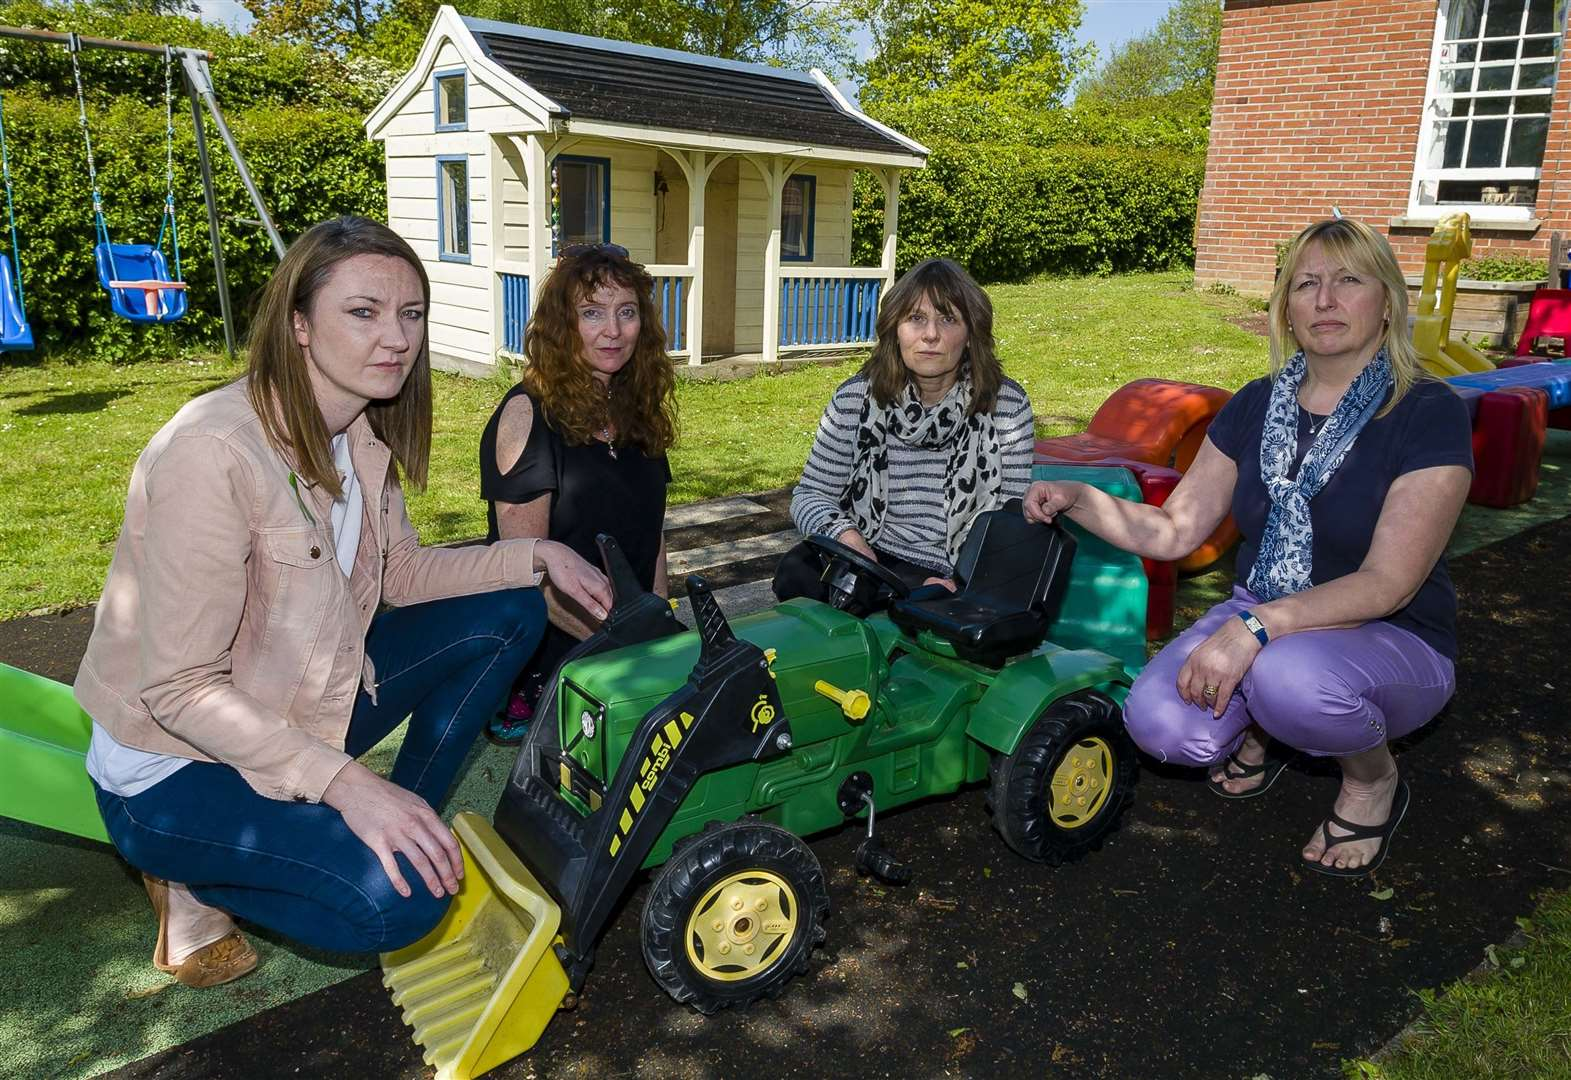 Heartbreak as vandals target playgroup on four occasions